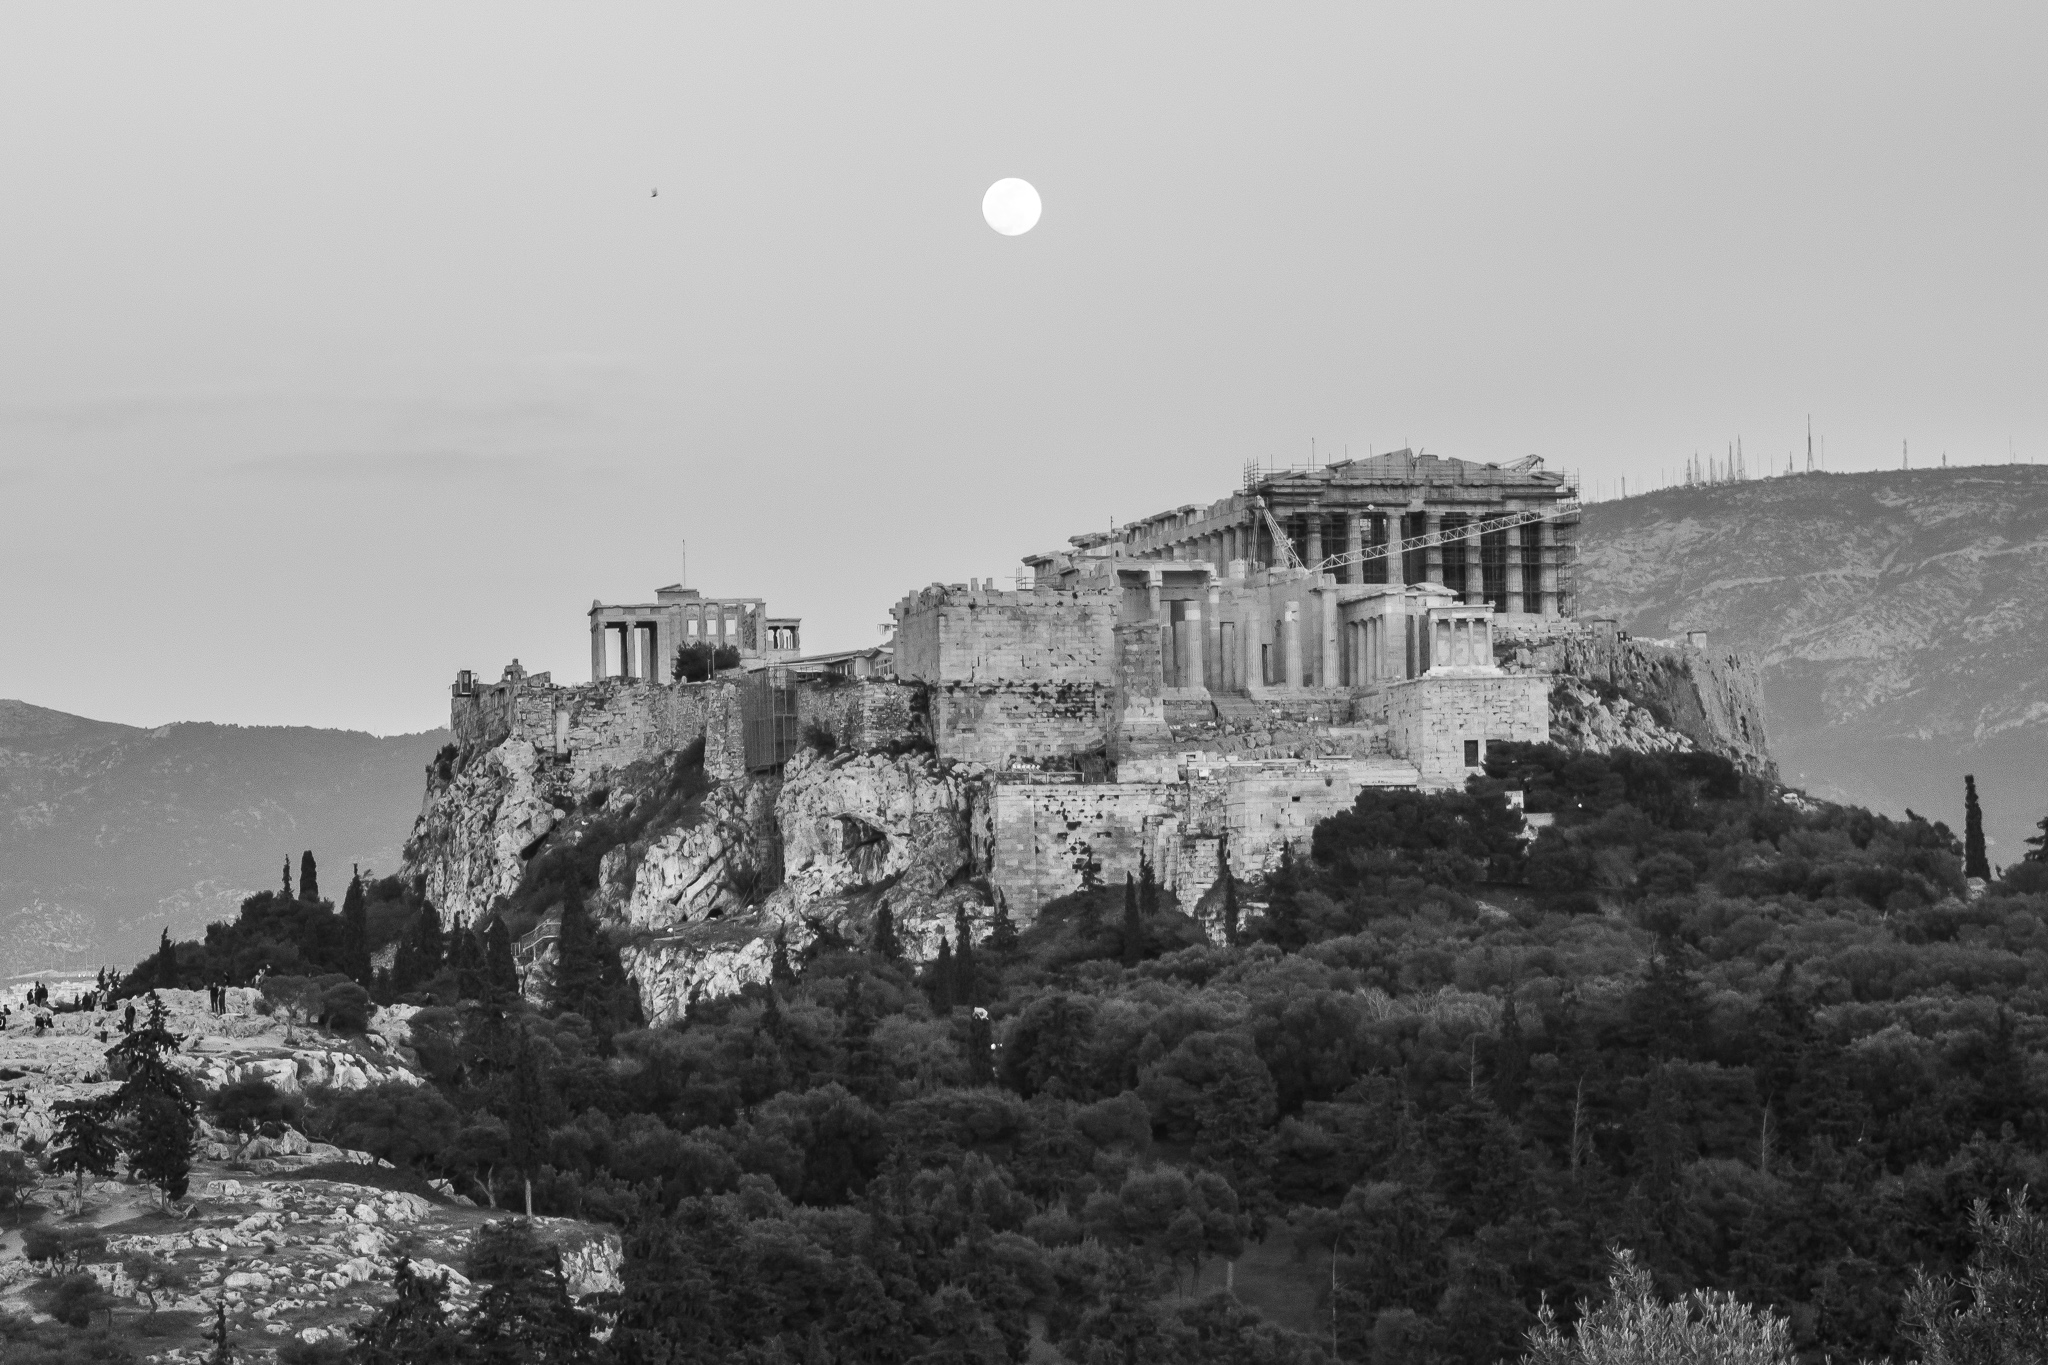 [Acropolis; High city.]<br> The Acropolis of Athens, located about 150m above sea level, is the most important archaeological site of ancient Greece. <br>The citadel, as in almost all the villages of ancient Greece, served as a place of worship for the ancient gods or deities and also fulfilled a defensive function.